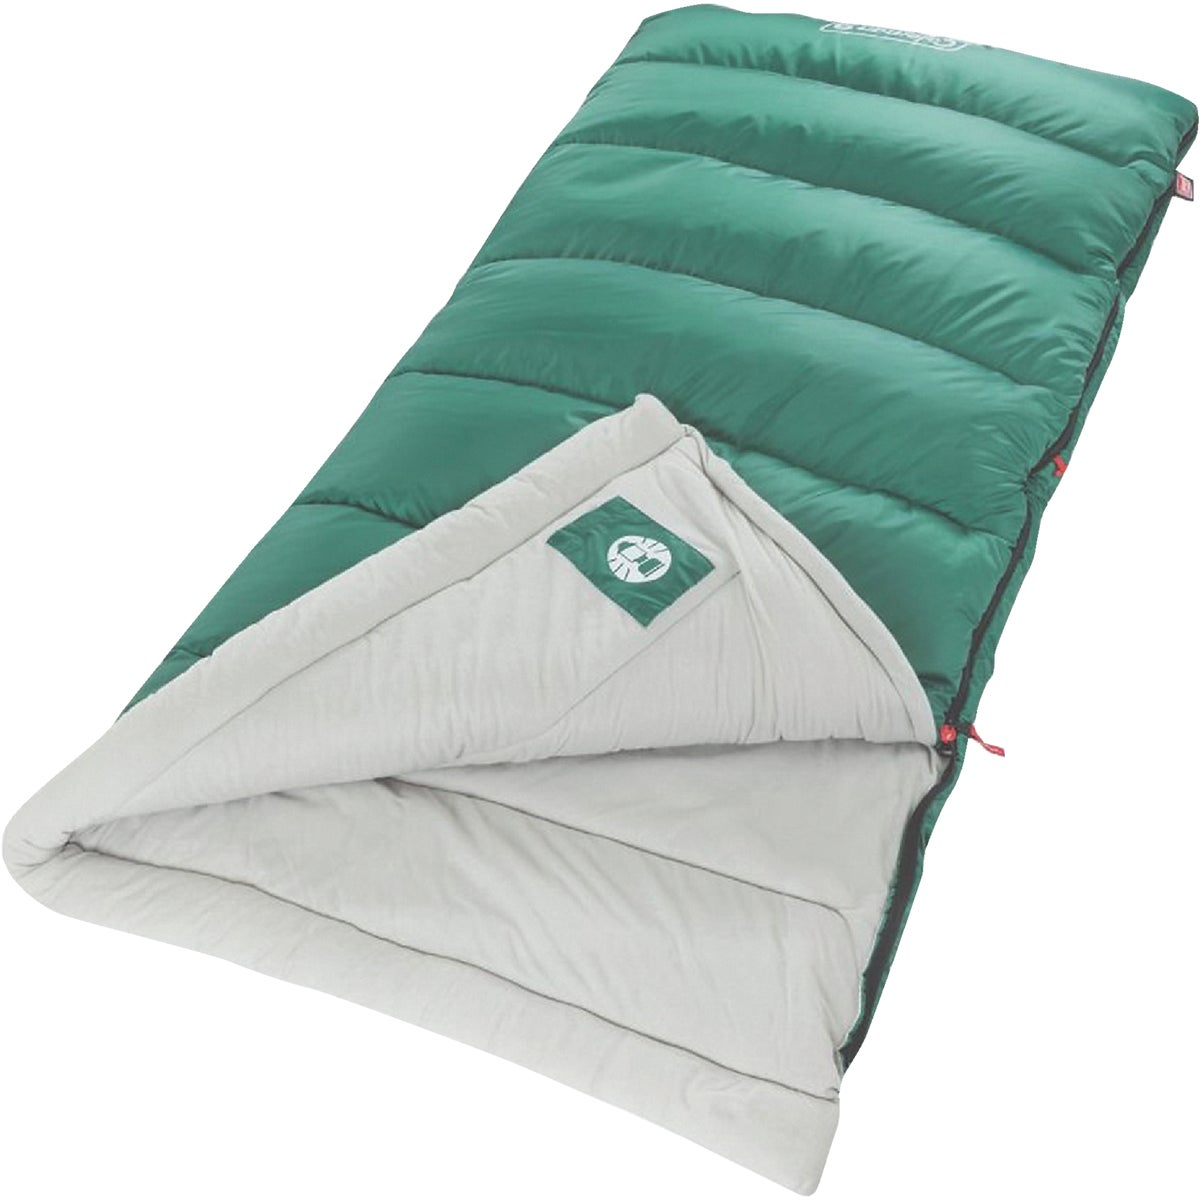 3LB SLEEPING BAG - 49665 by Academy Broadway Cor